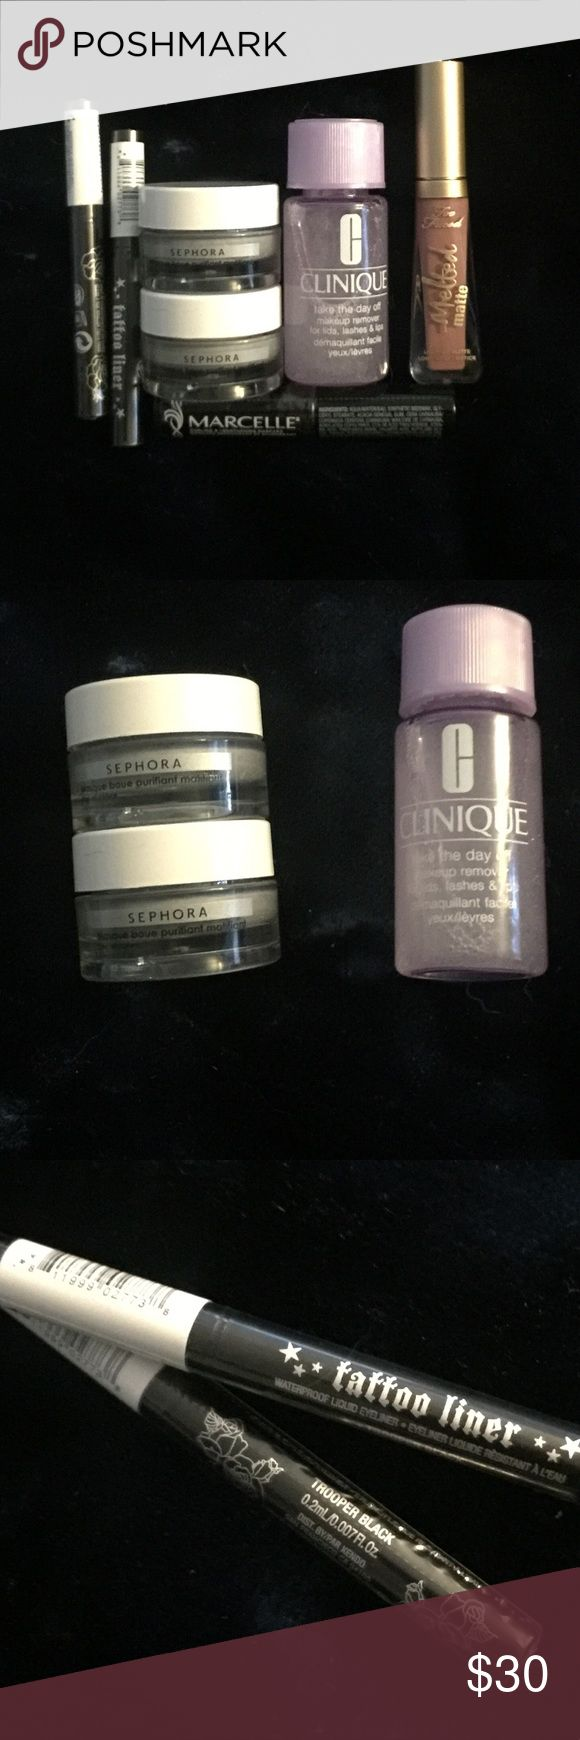 7 piece Face Bundle from Sephora Playbox NWT Clinique